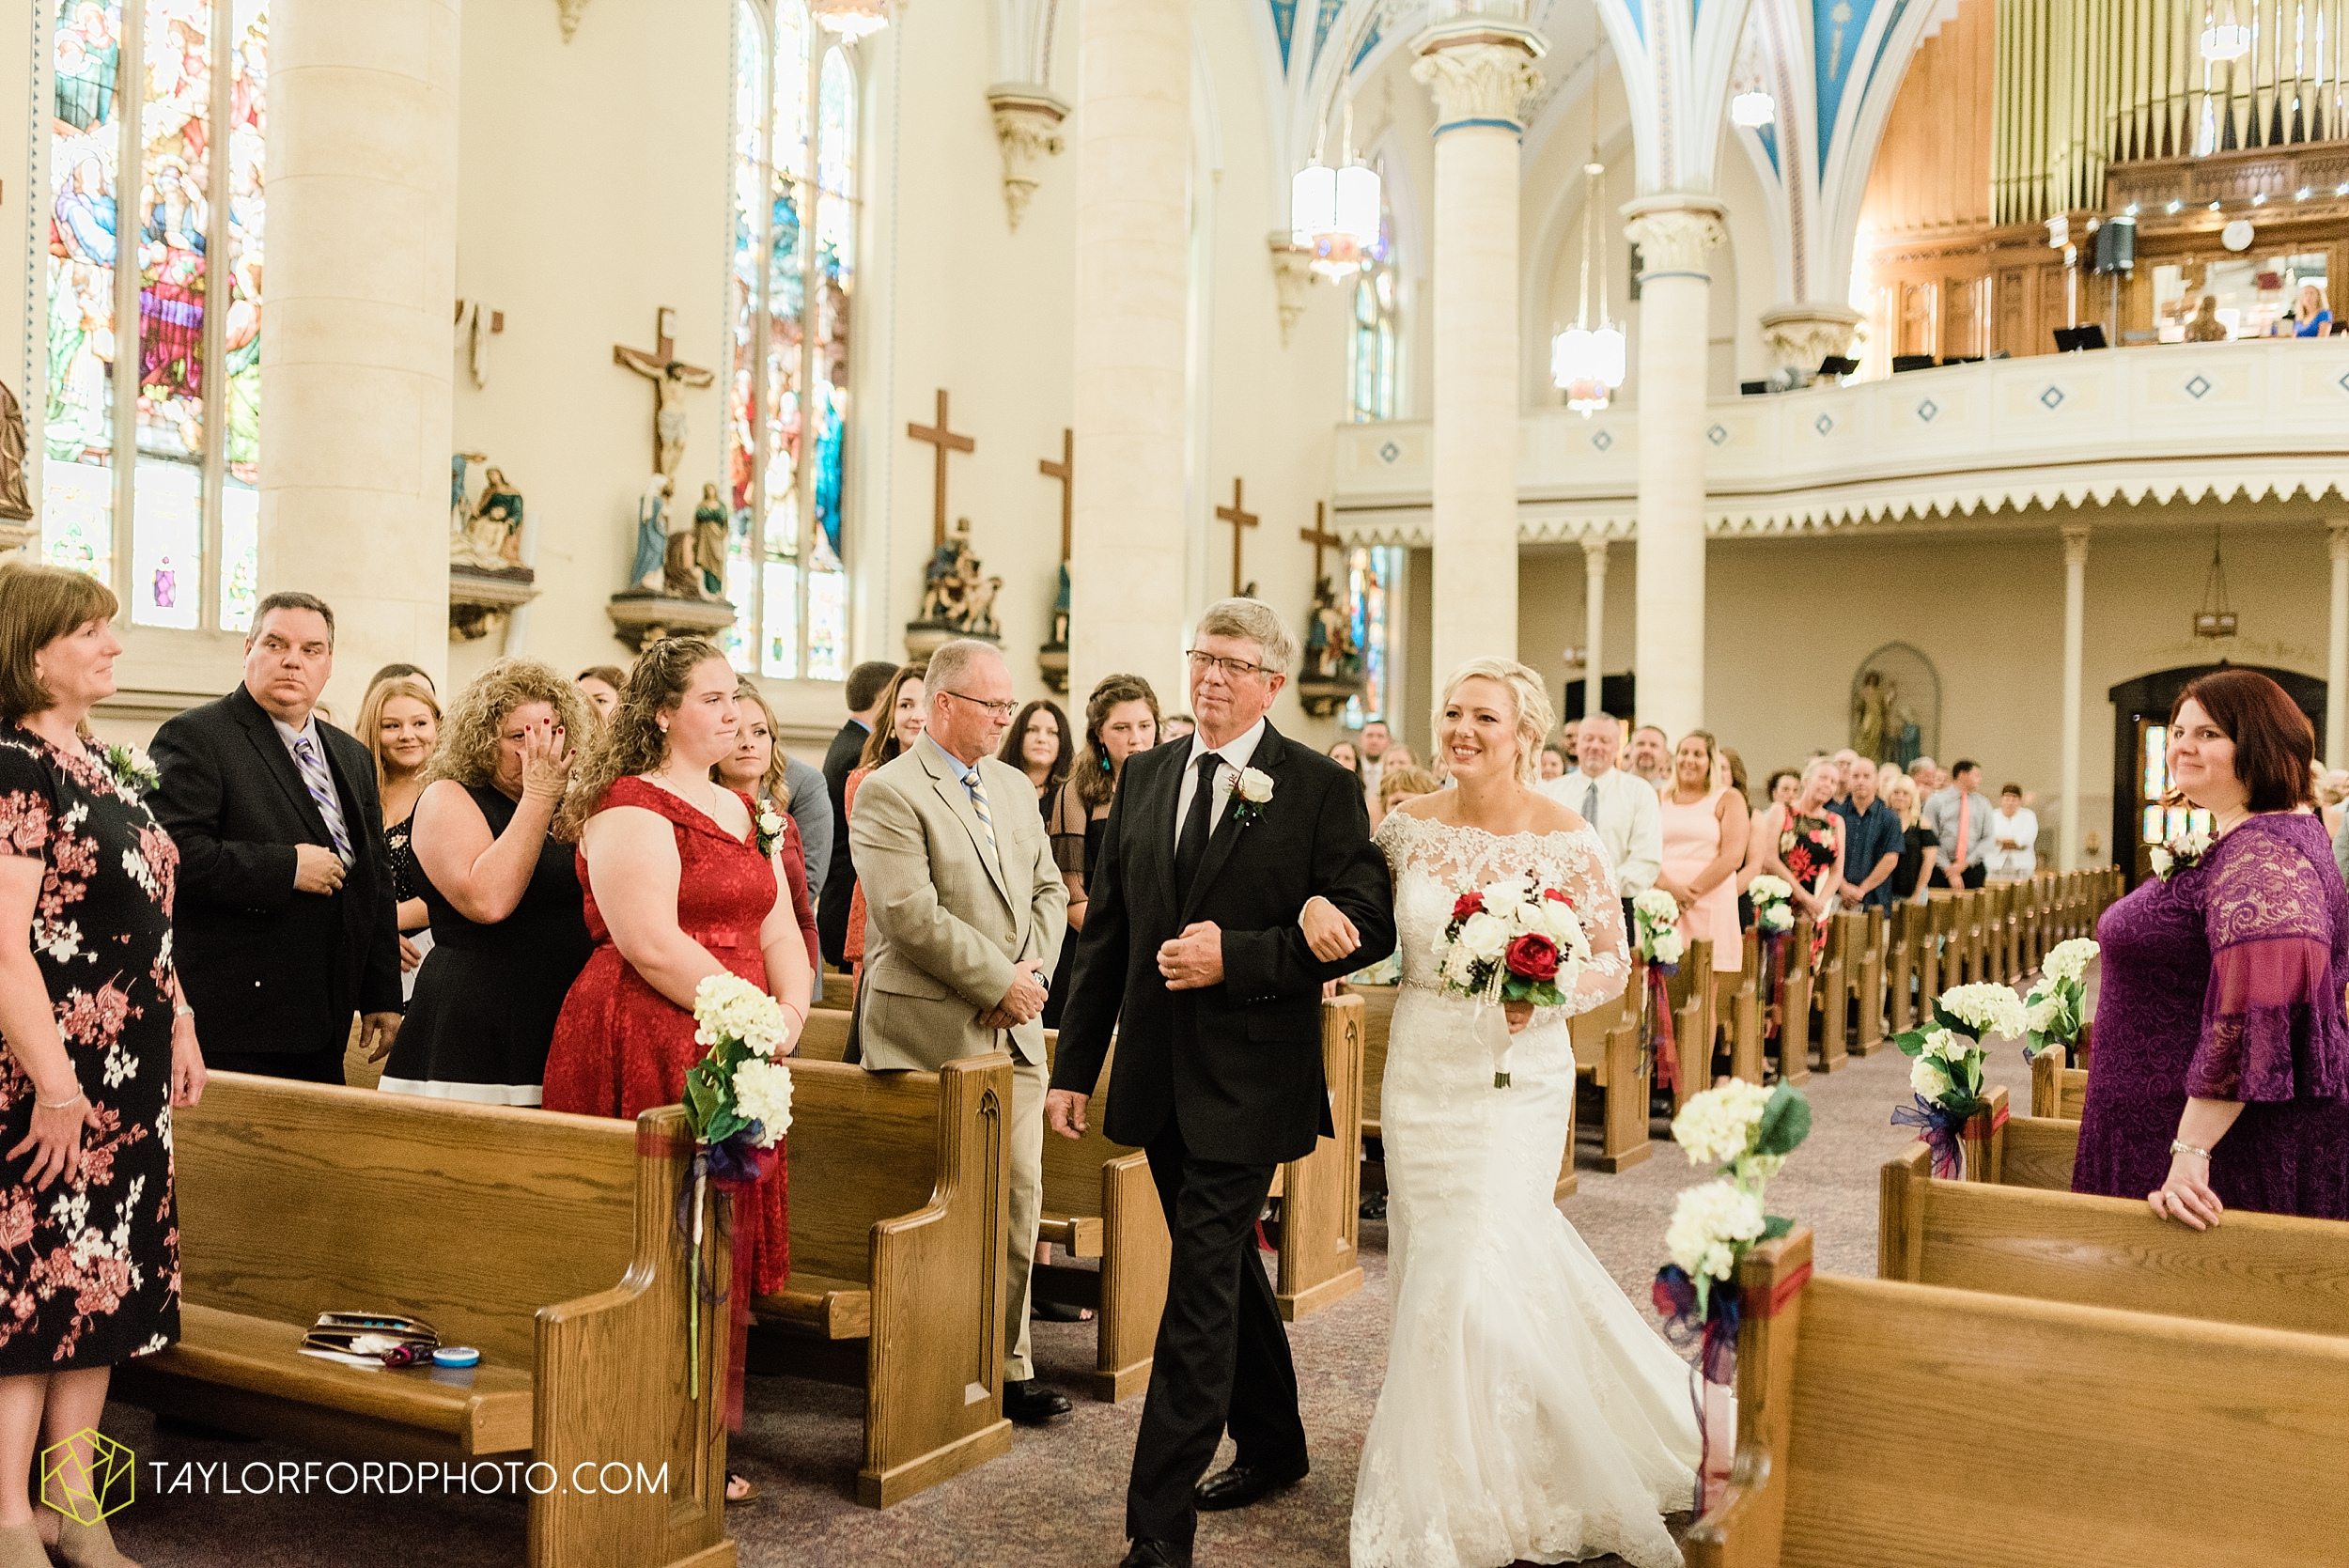 gayle-rayman-mike-steele-ottoville-ohio-wedding-immaculate-conception-parish-center-wedding-sycamore-lake-winery-wannamachers-photographer-taylor-ford-photography_0391.jpg